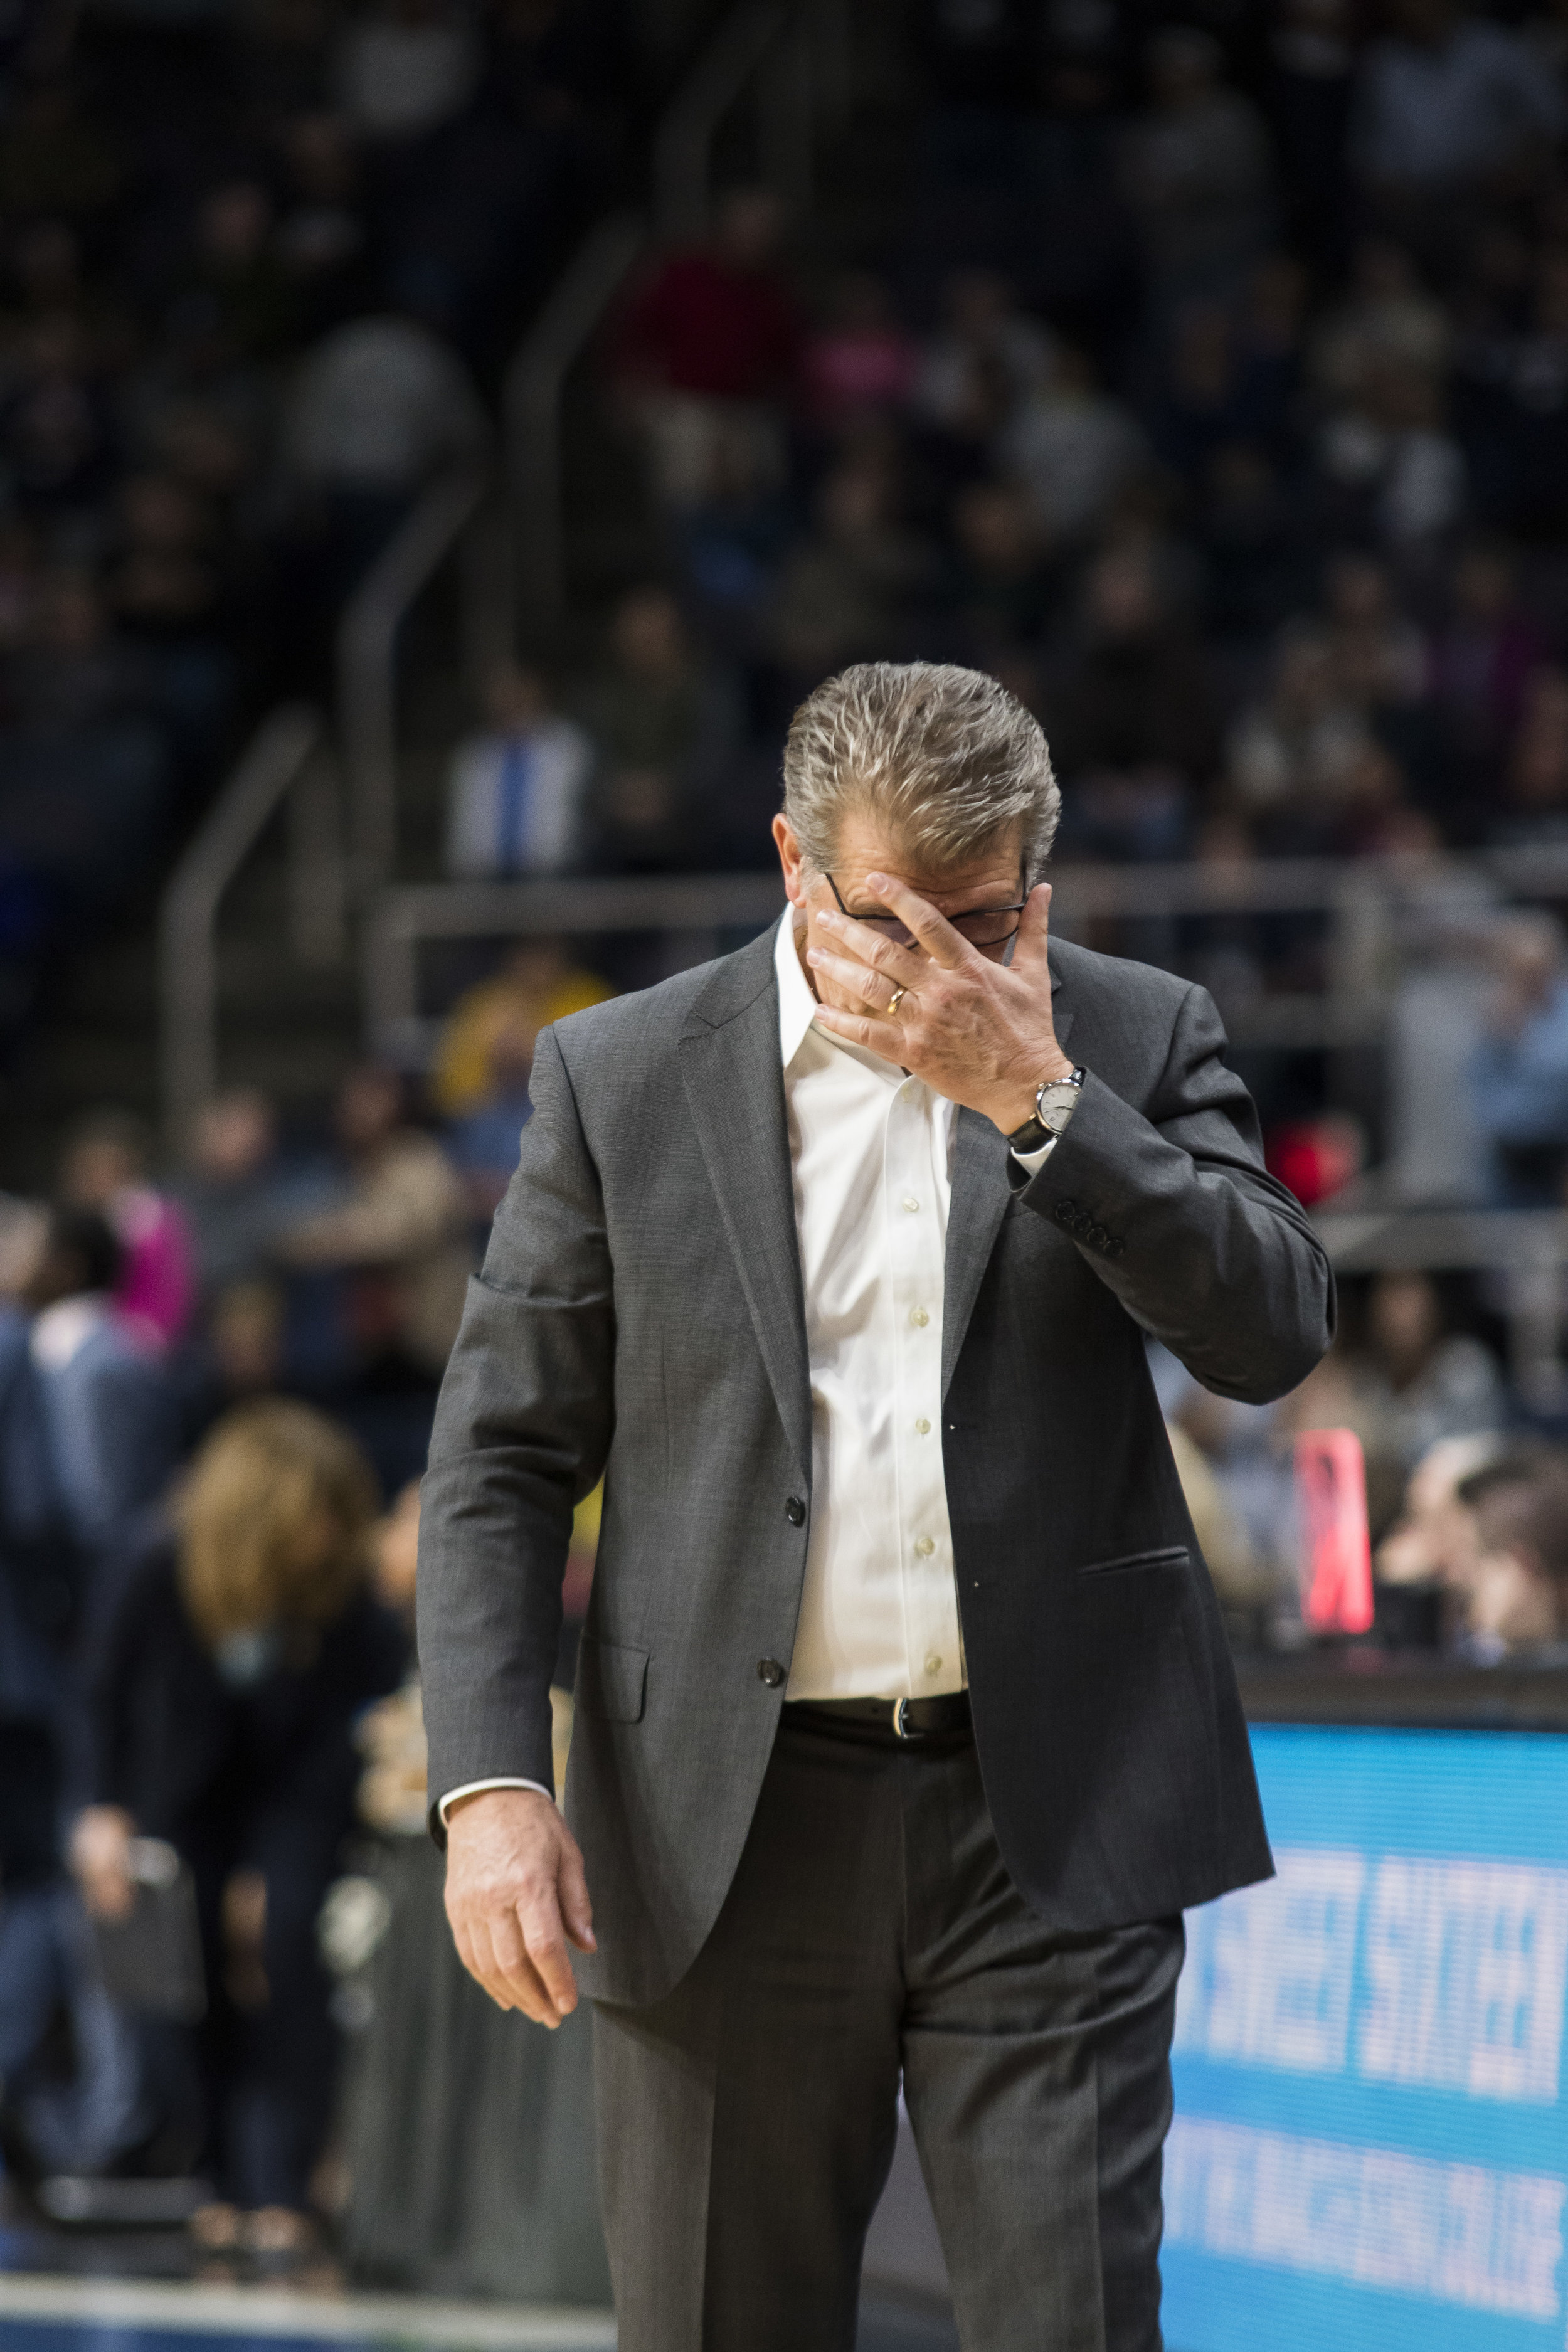 Geno Auriemma and Jeff Walzs' team's will battle it out for a spot in the Final Four. Photo by Eric Wang/The Daily Campus